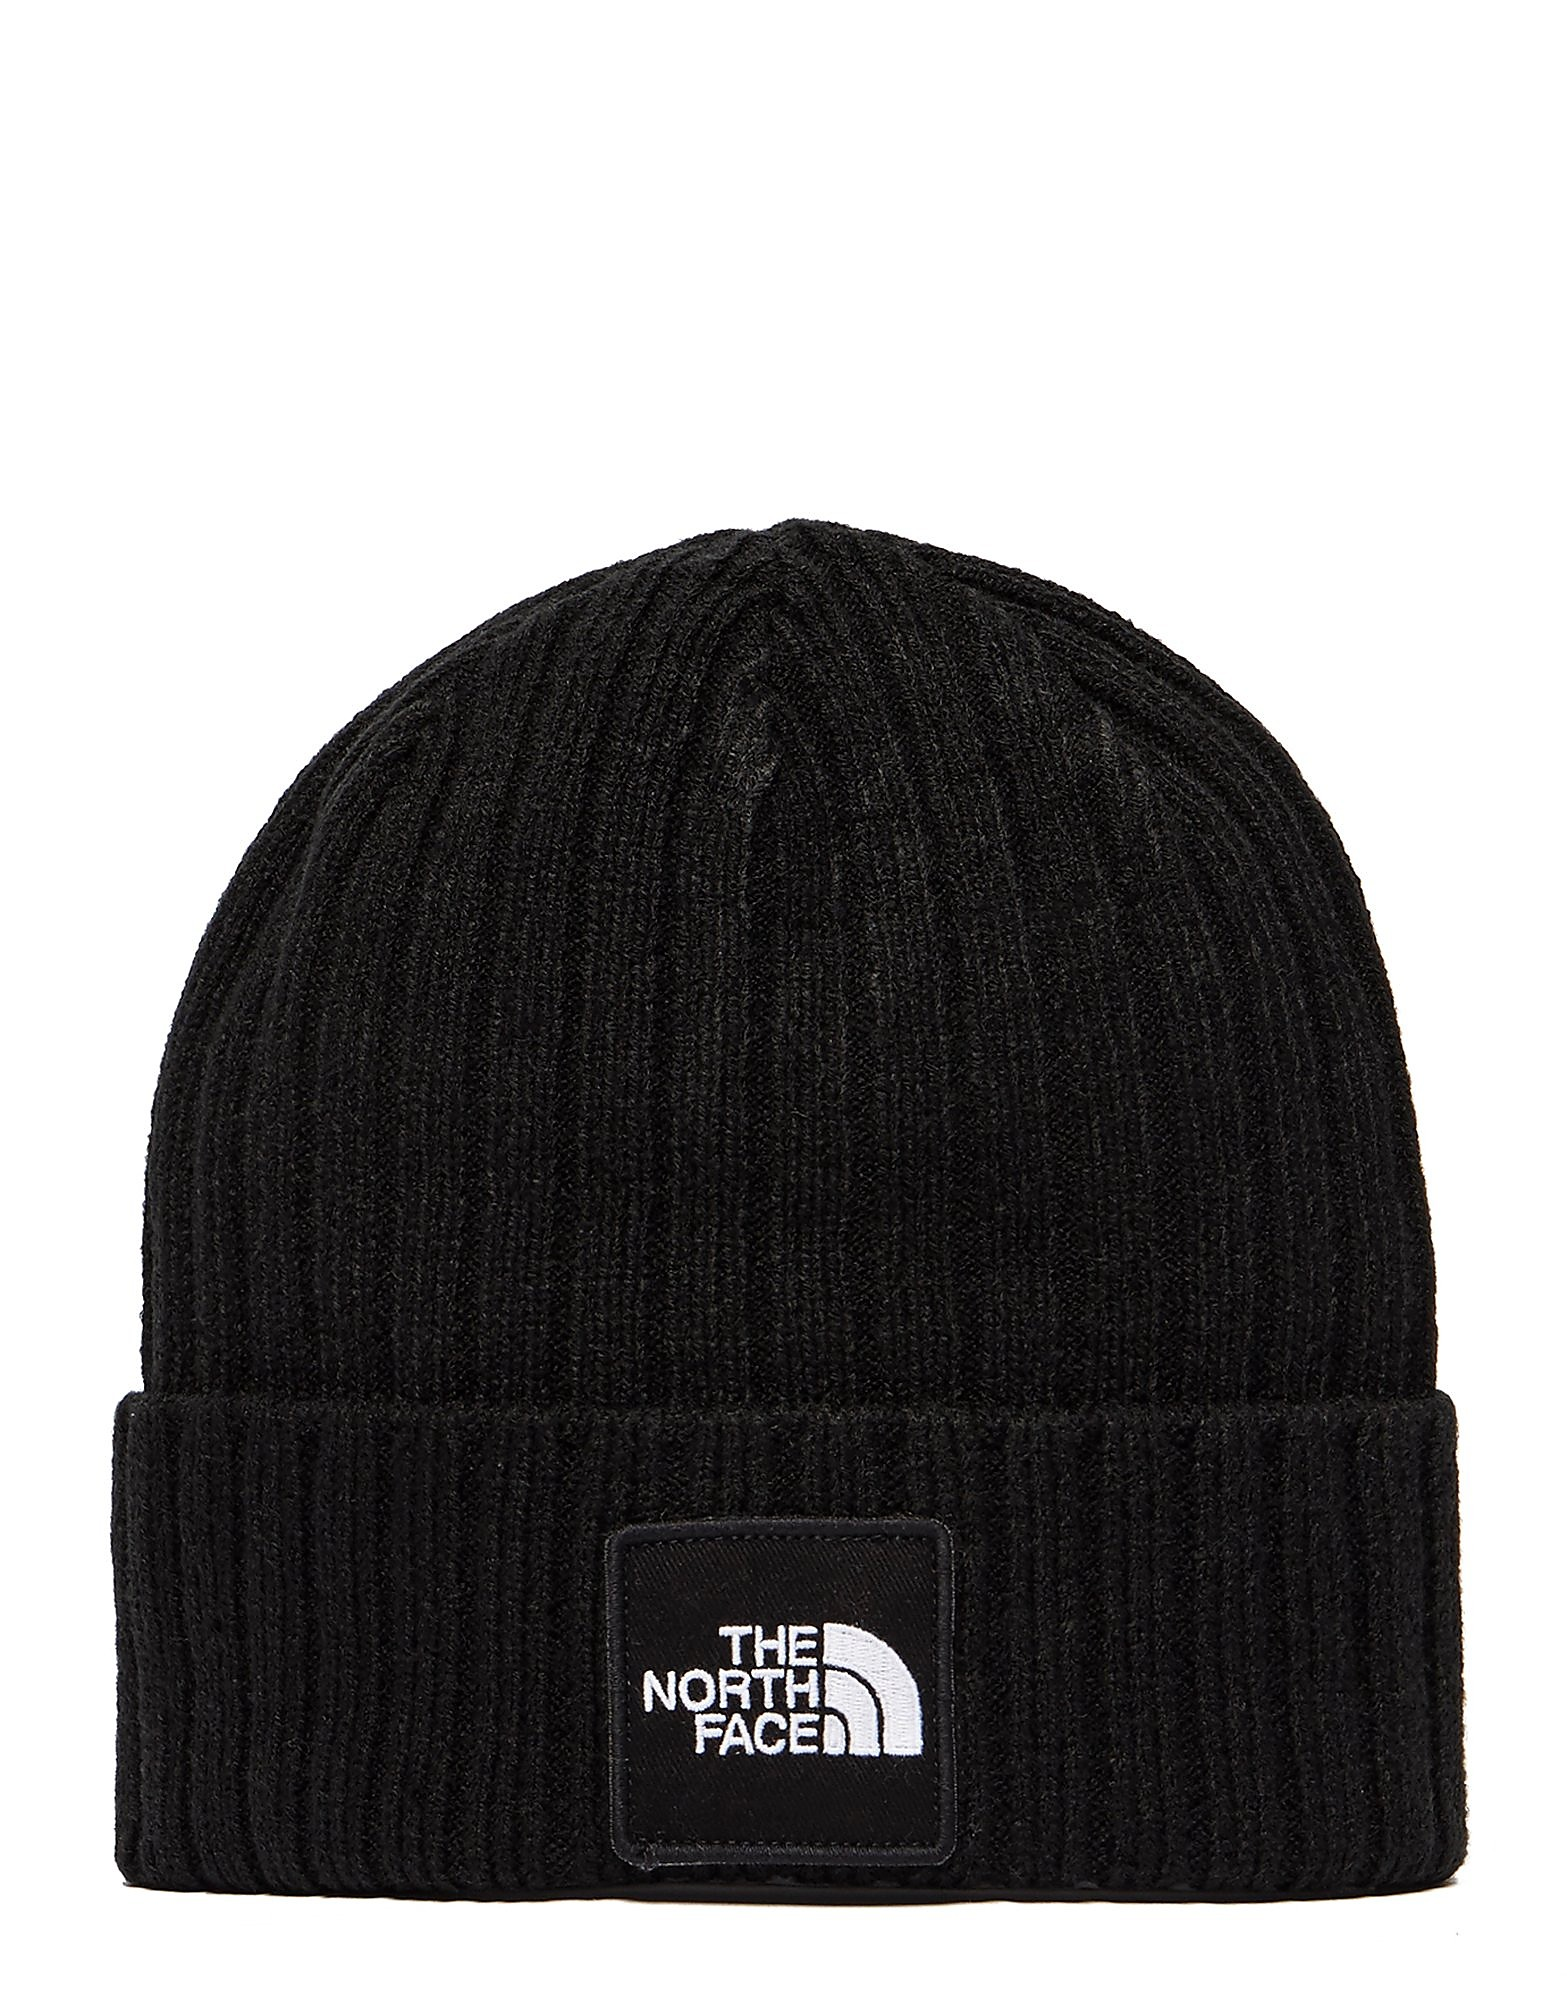 The North Face Cuff Beanie